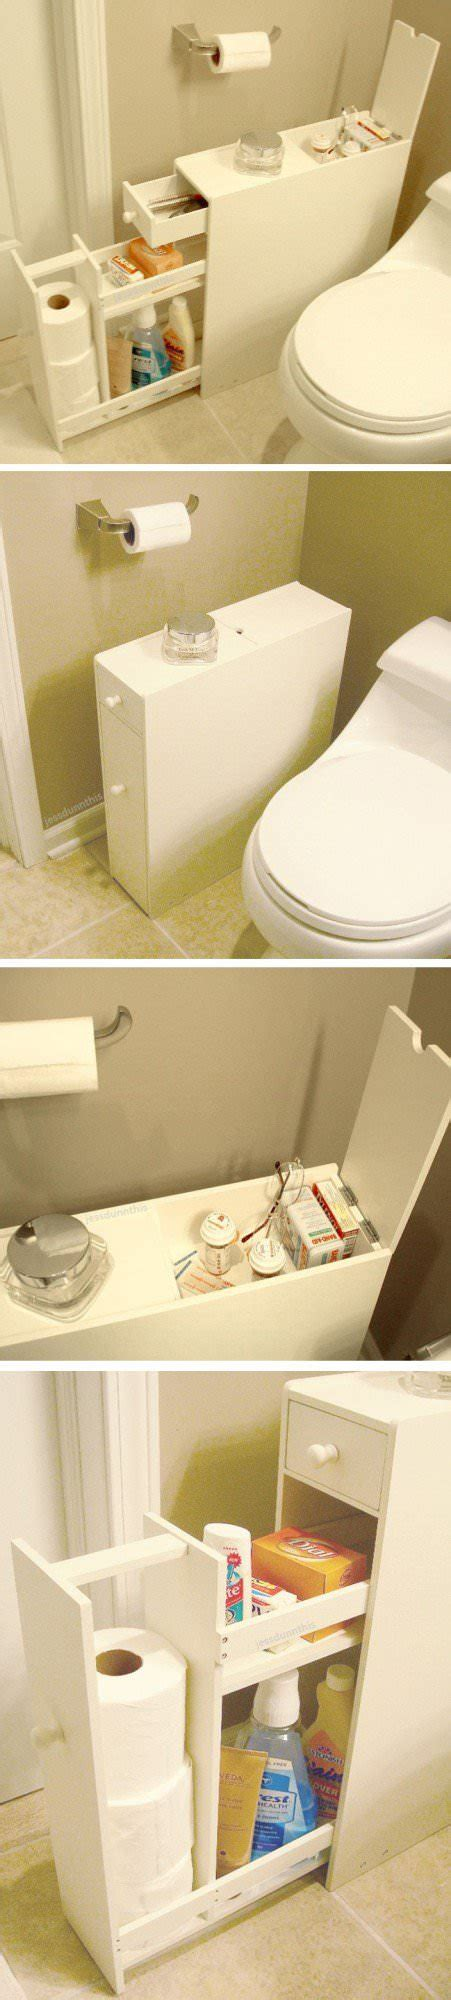 small bathroom storage ideas top 25 the best diy small bathroom storage ideas that will fascinate you veryhom